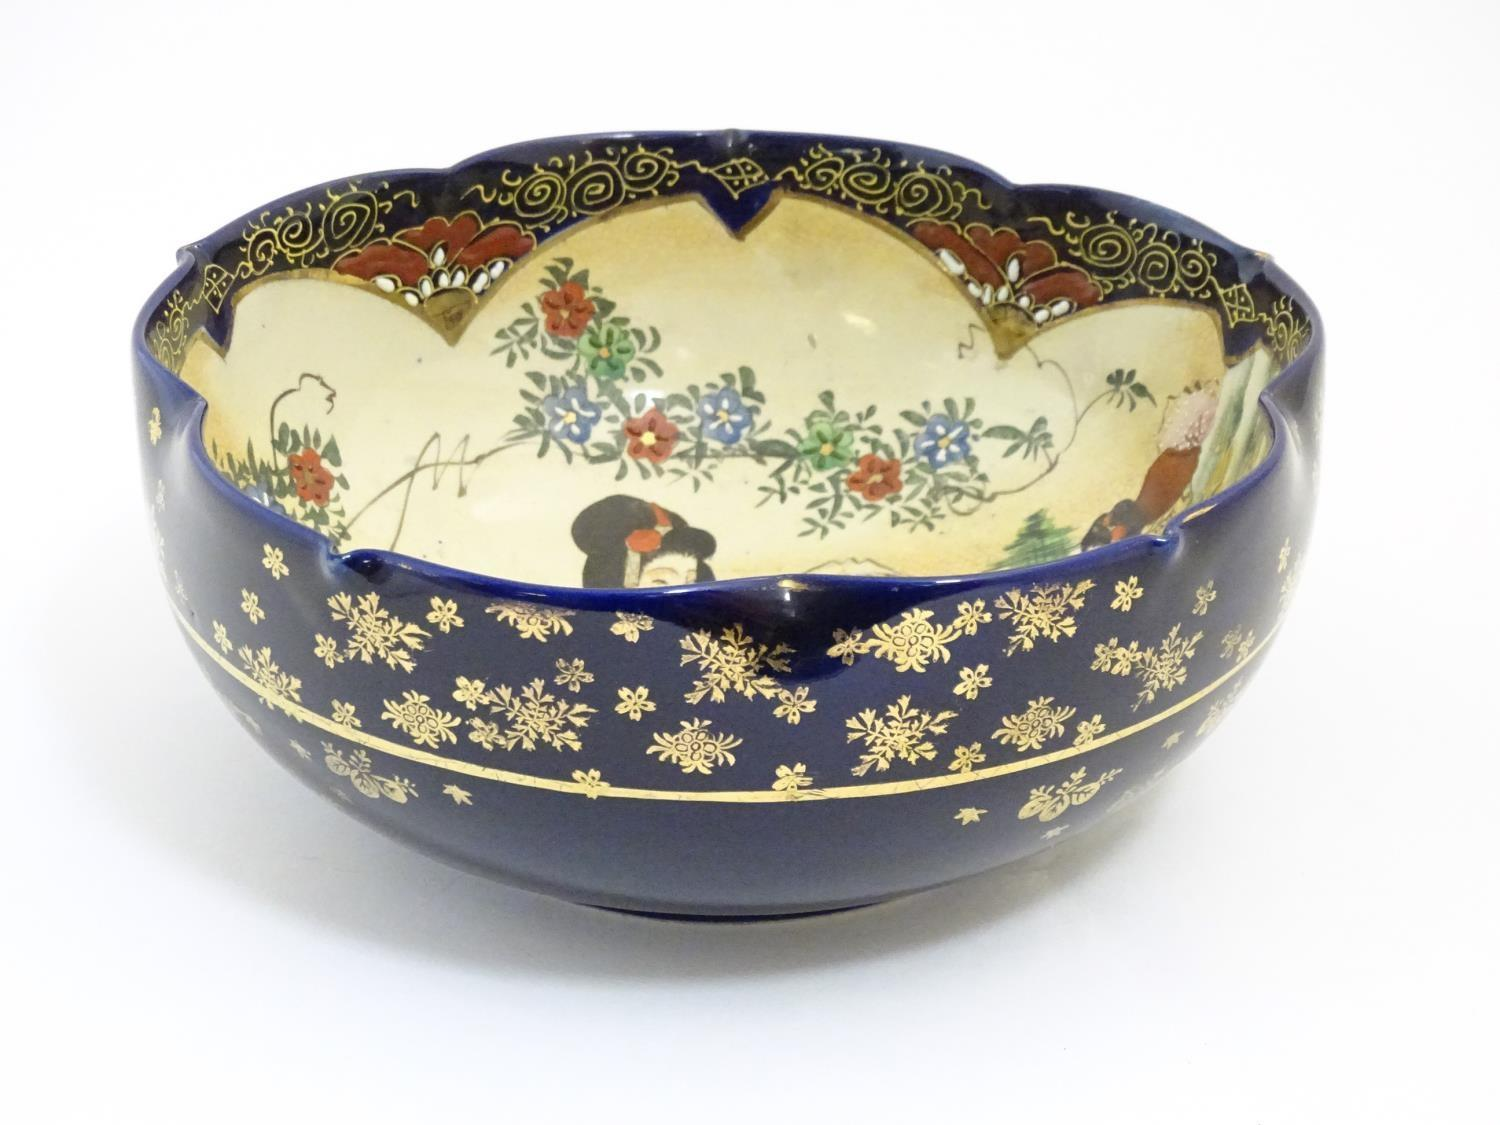 A Japanese export bowl with a lobed rim, decorated with Geisha girls with fans and flowers in a - Image 5 of 7